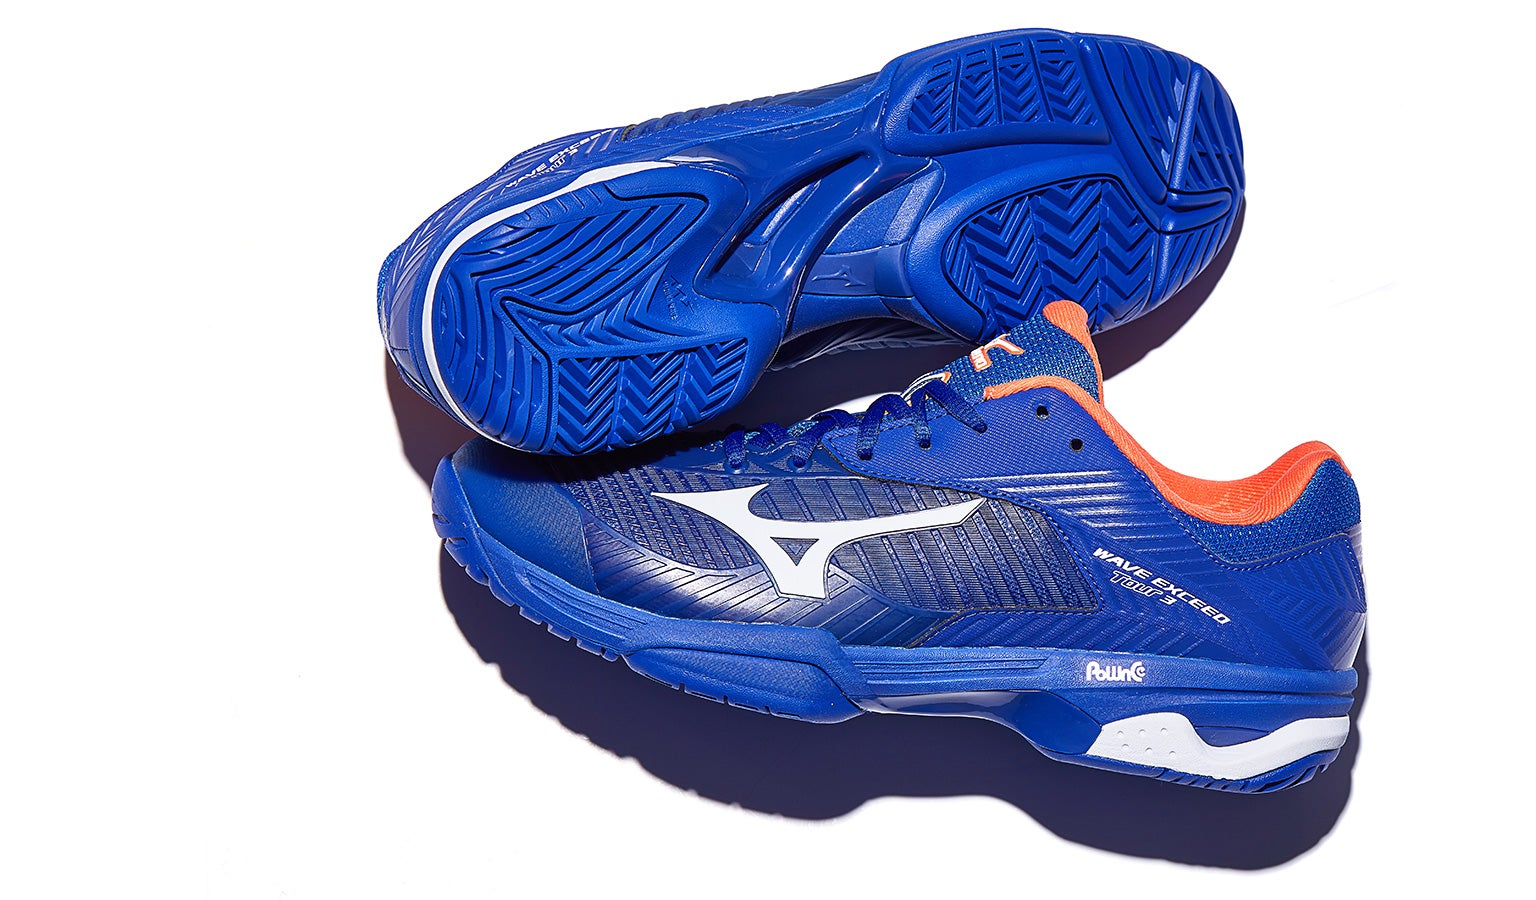 mens mizuno running shoes size 9.5 eu weight right fit jobs